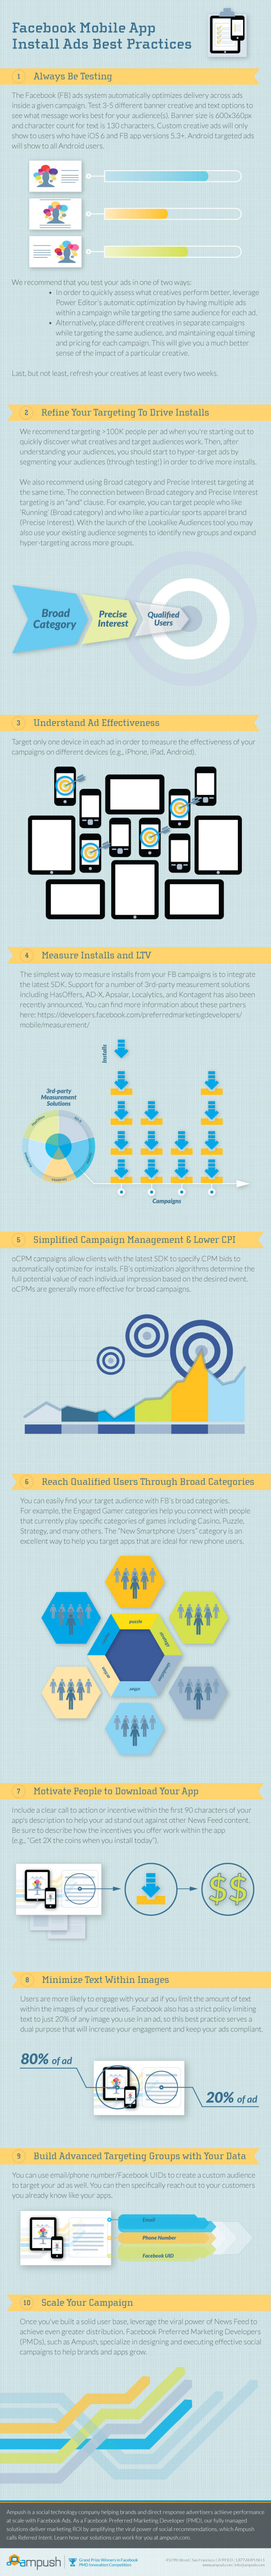 The Facebook Mobile App Install Ad Checklist Infographic